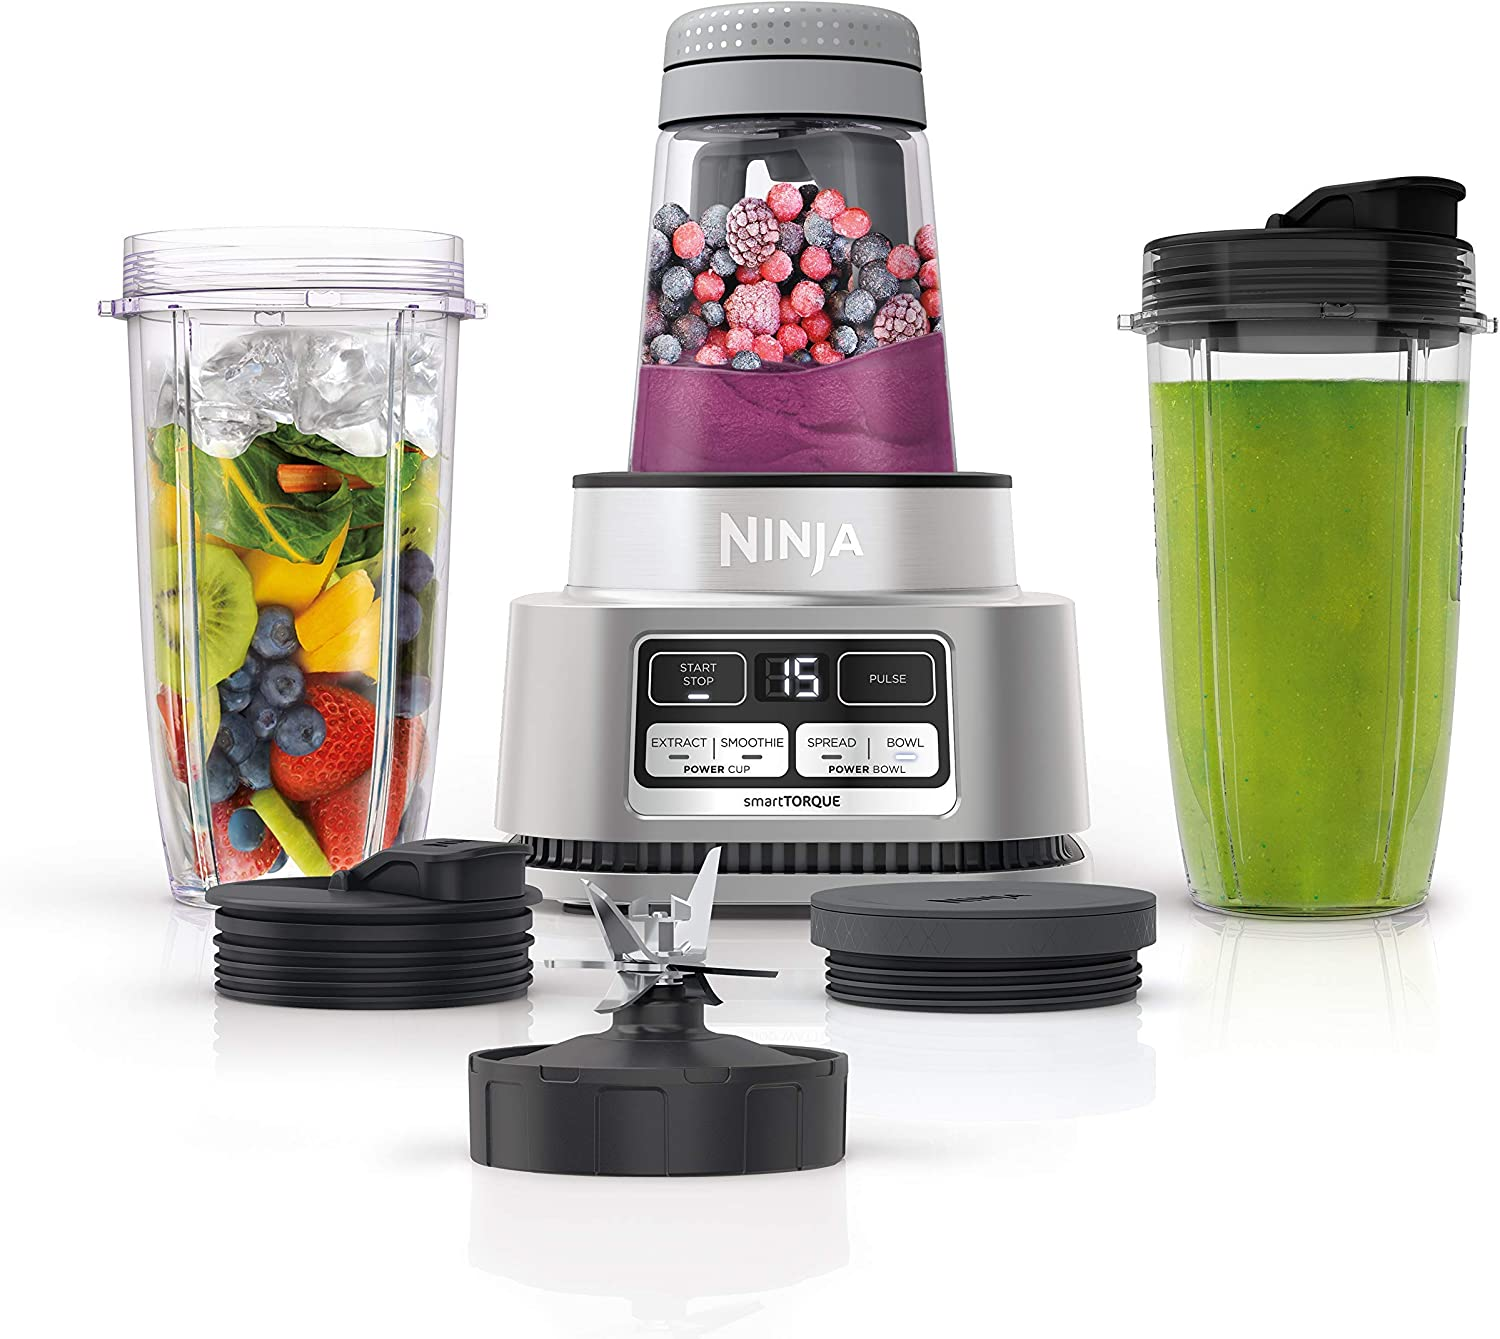 Ninja Foodi SS101 Smoothie Bowl Maker and Nutrient Extractor* 1200WP smartTORQUE 4 Auto-iQ Presets. One base, multi-functions (Renewed)